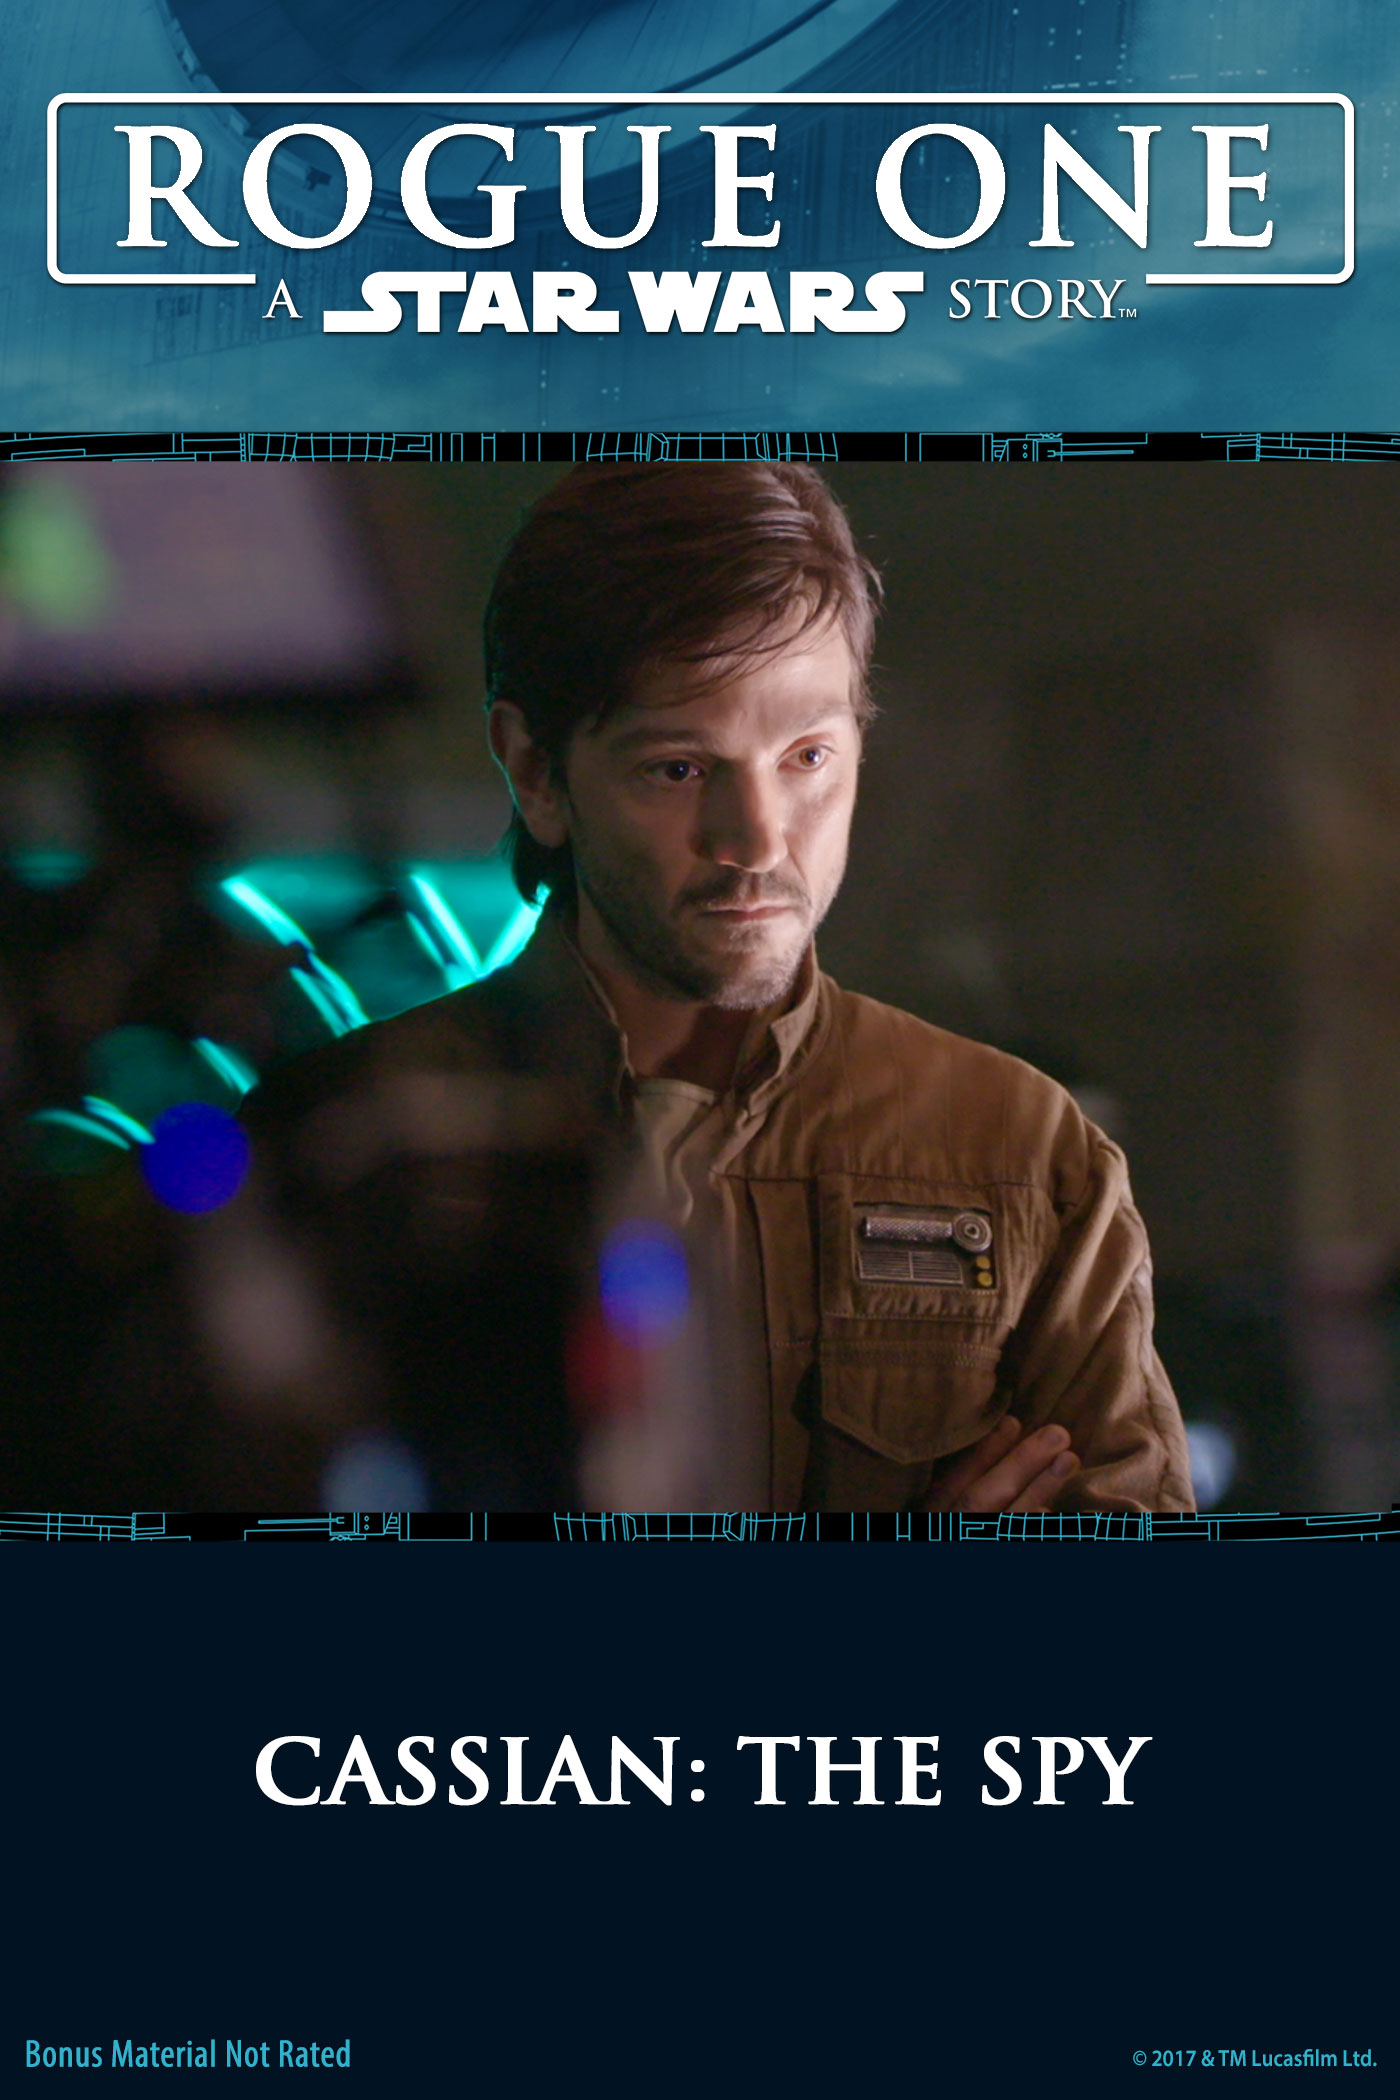 Cassian: The Spy